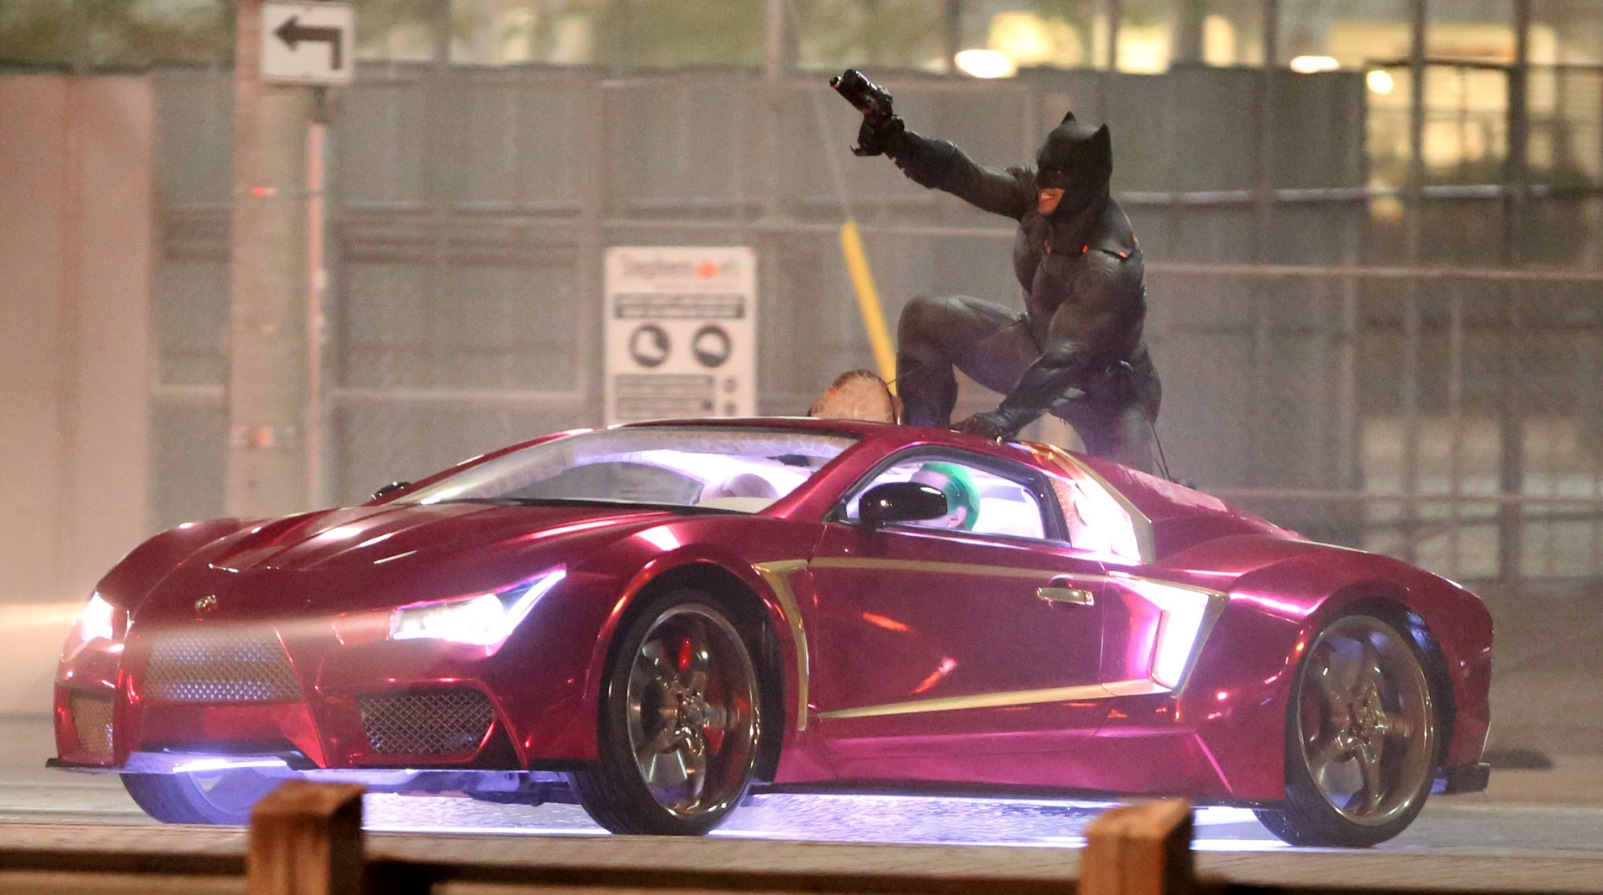 suicide squad set footage shows the joker and batman in dramatic